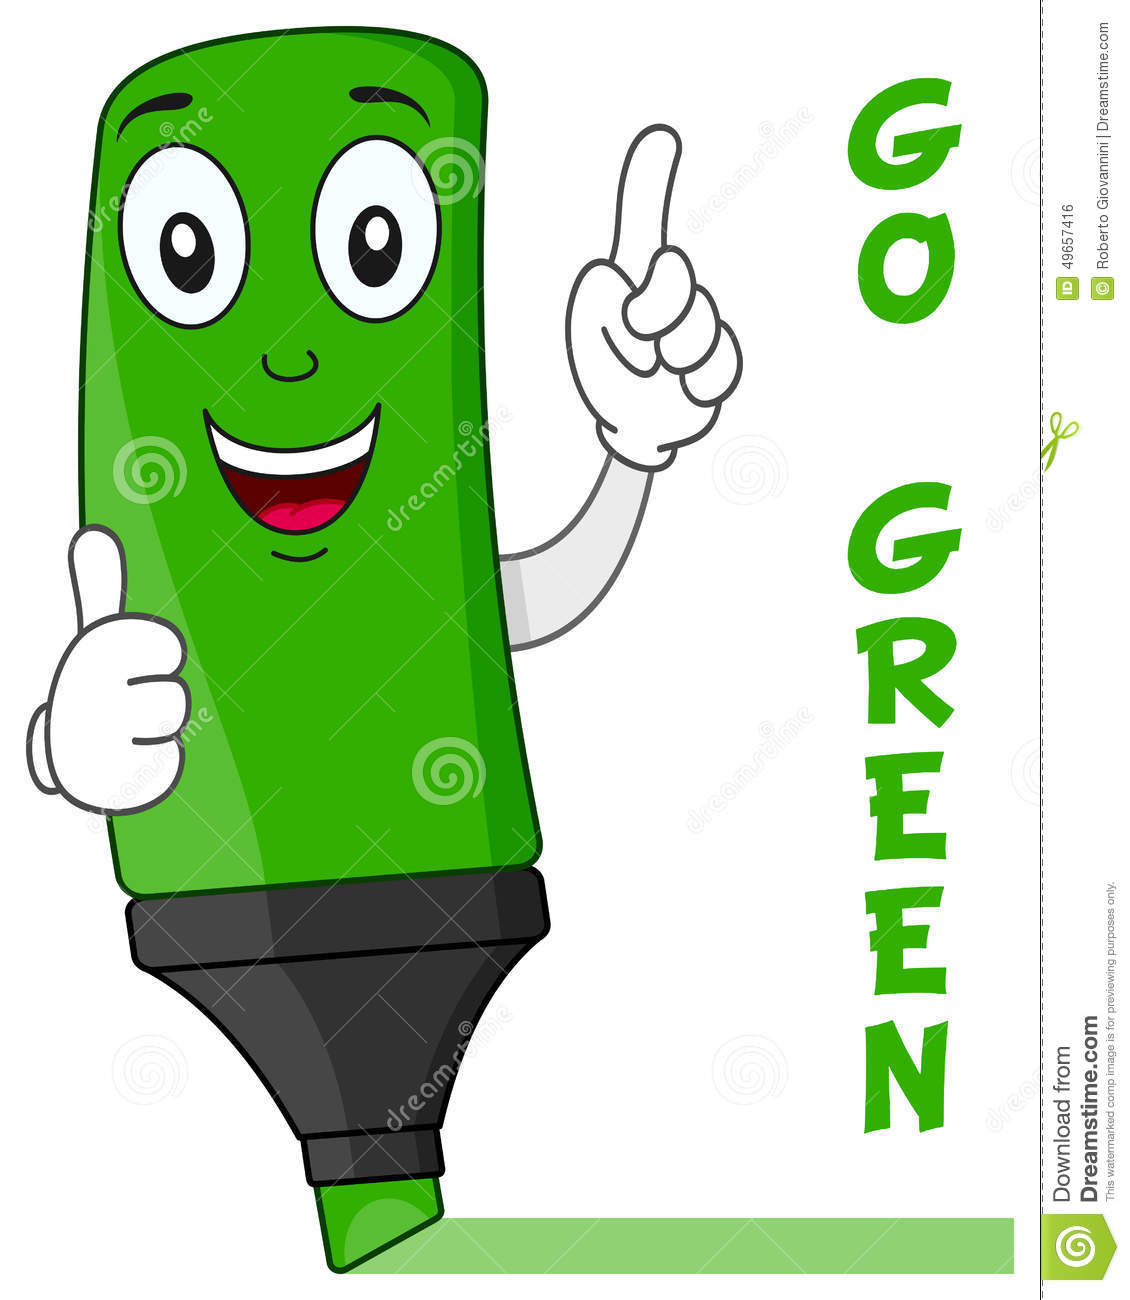 Go Green Clipart